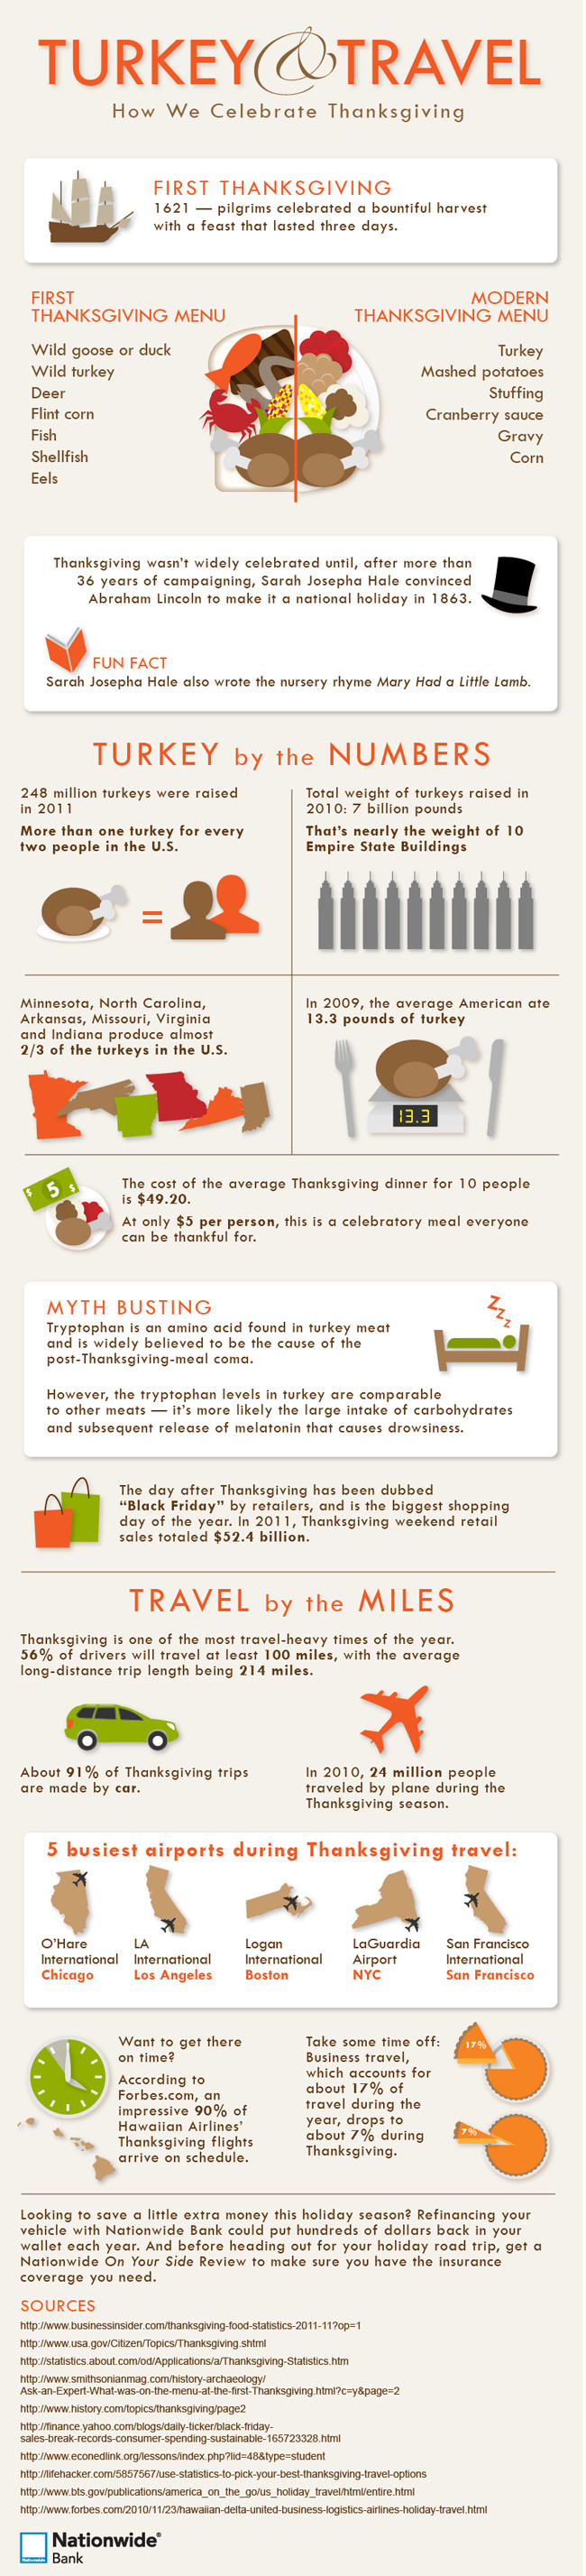 Turkey And Thanksgiving Facts  The celebration of Thanksgiving Fun facts and statistics